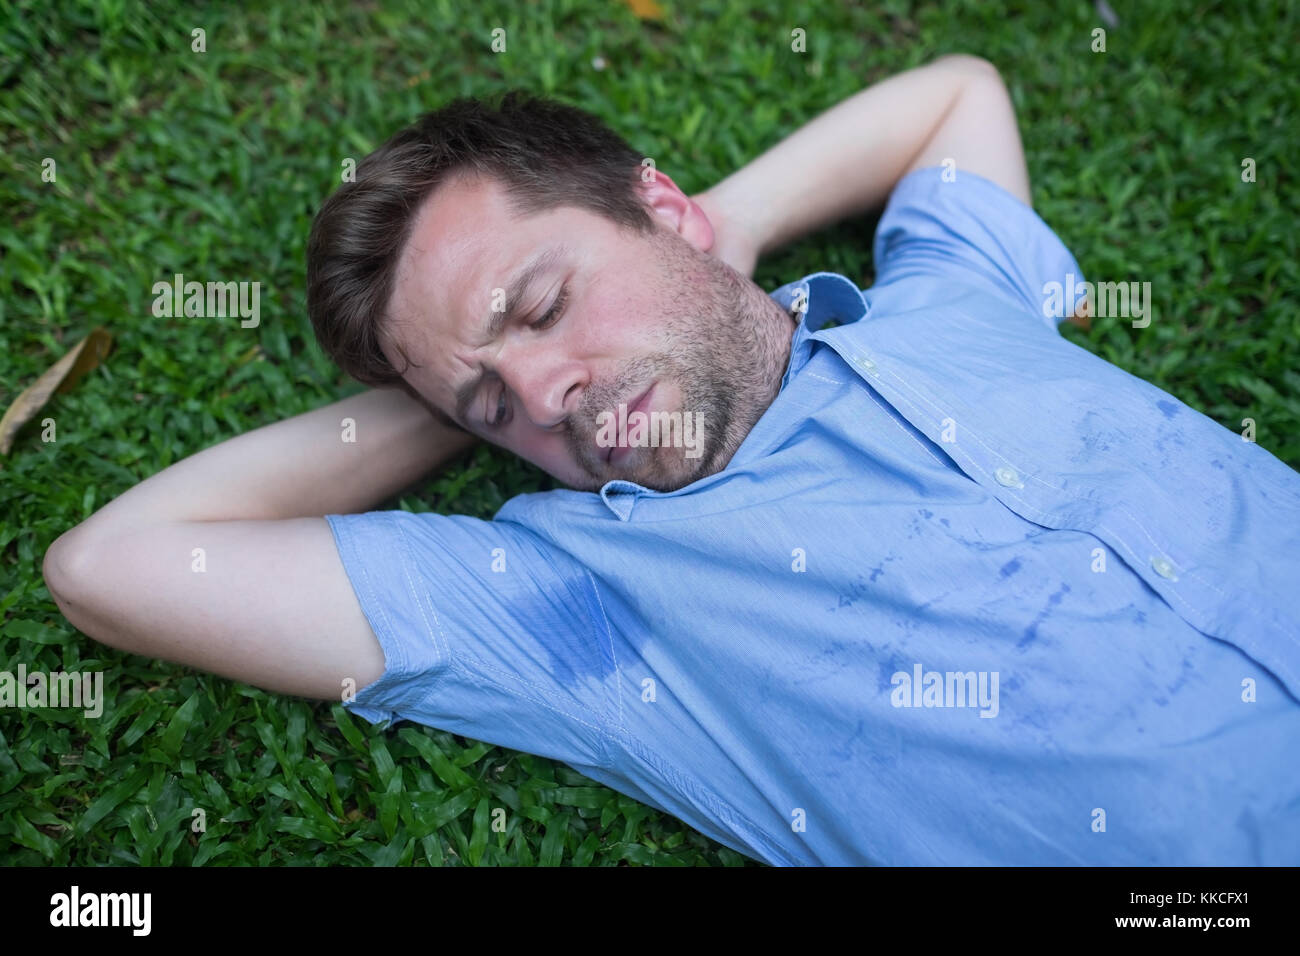 Caucasian, young man is resting on green grass and looking on his wet shirt. - Stock Image